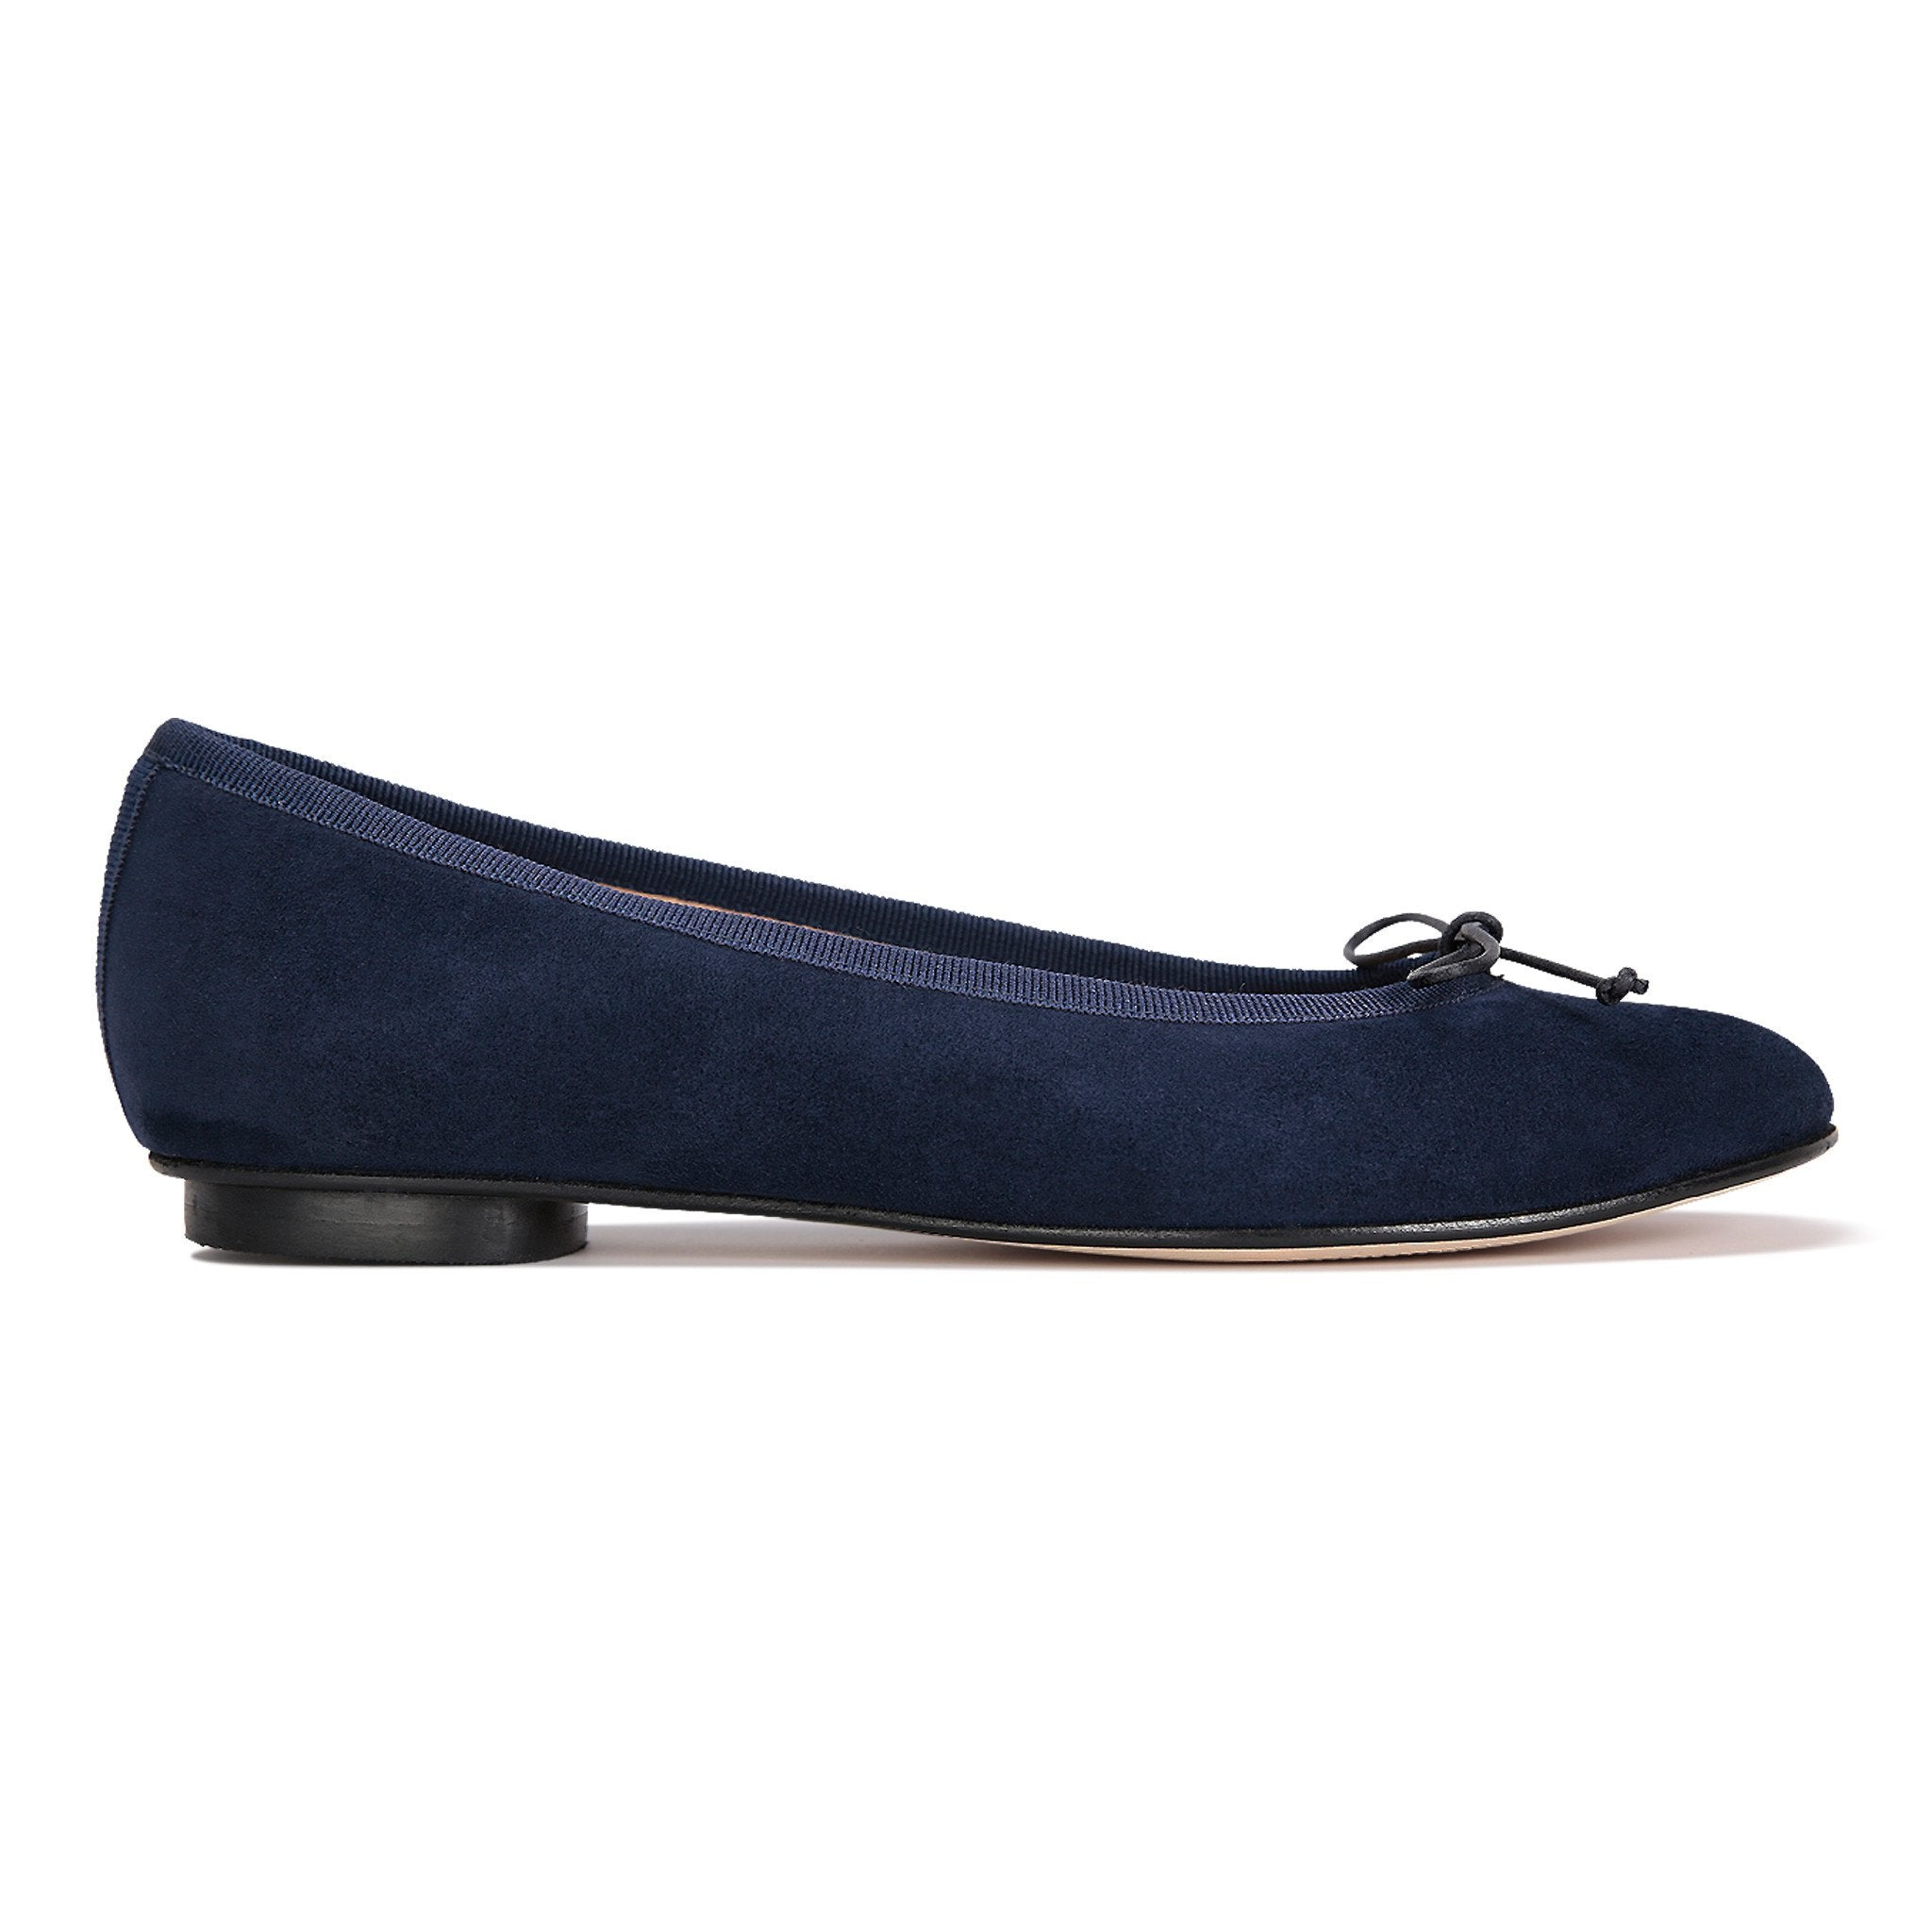 ROMA - Velukid Midnight + Drawstring Navy Bow, VIAJIYU - Women's Hand Made Sustainable Luxury Shoes. Made in Italy. Made to Order.